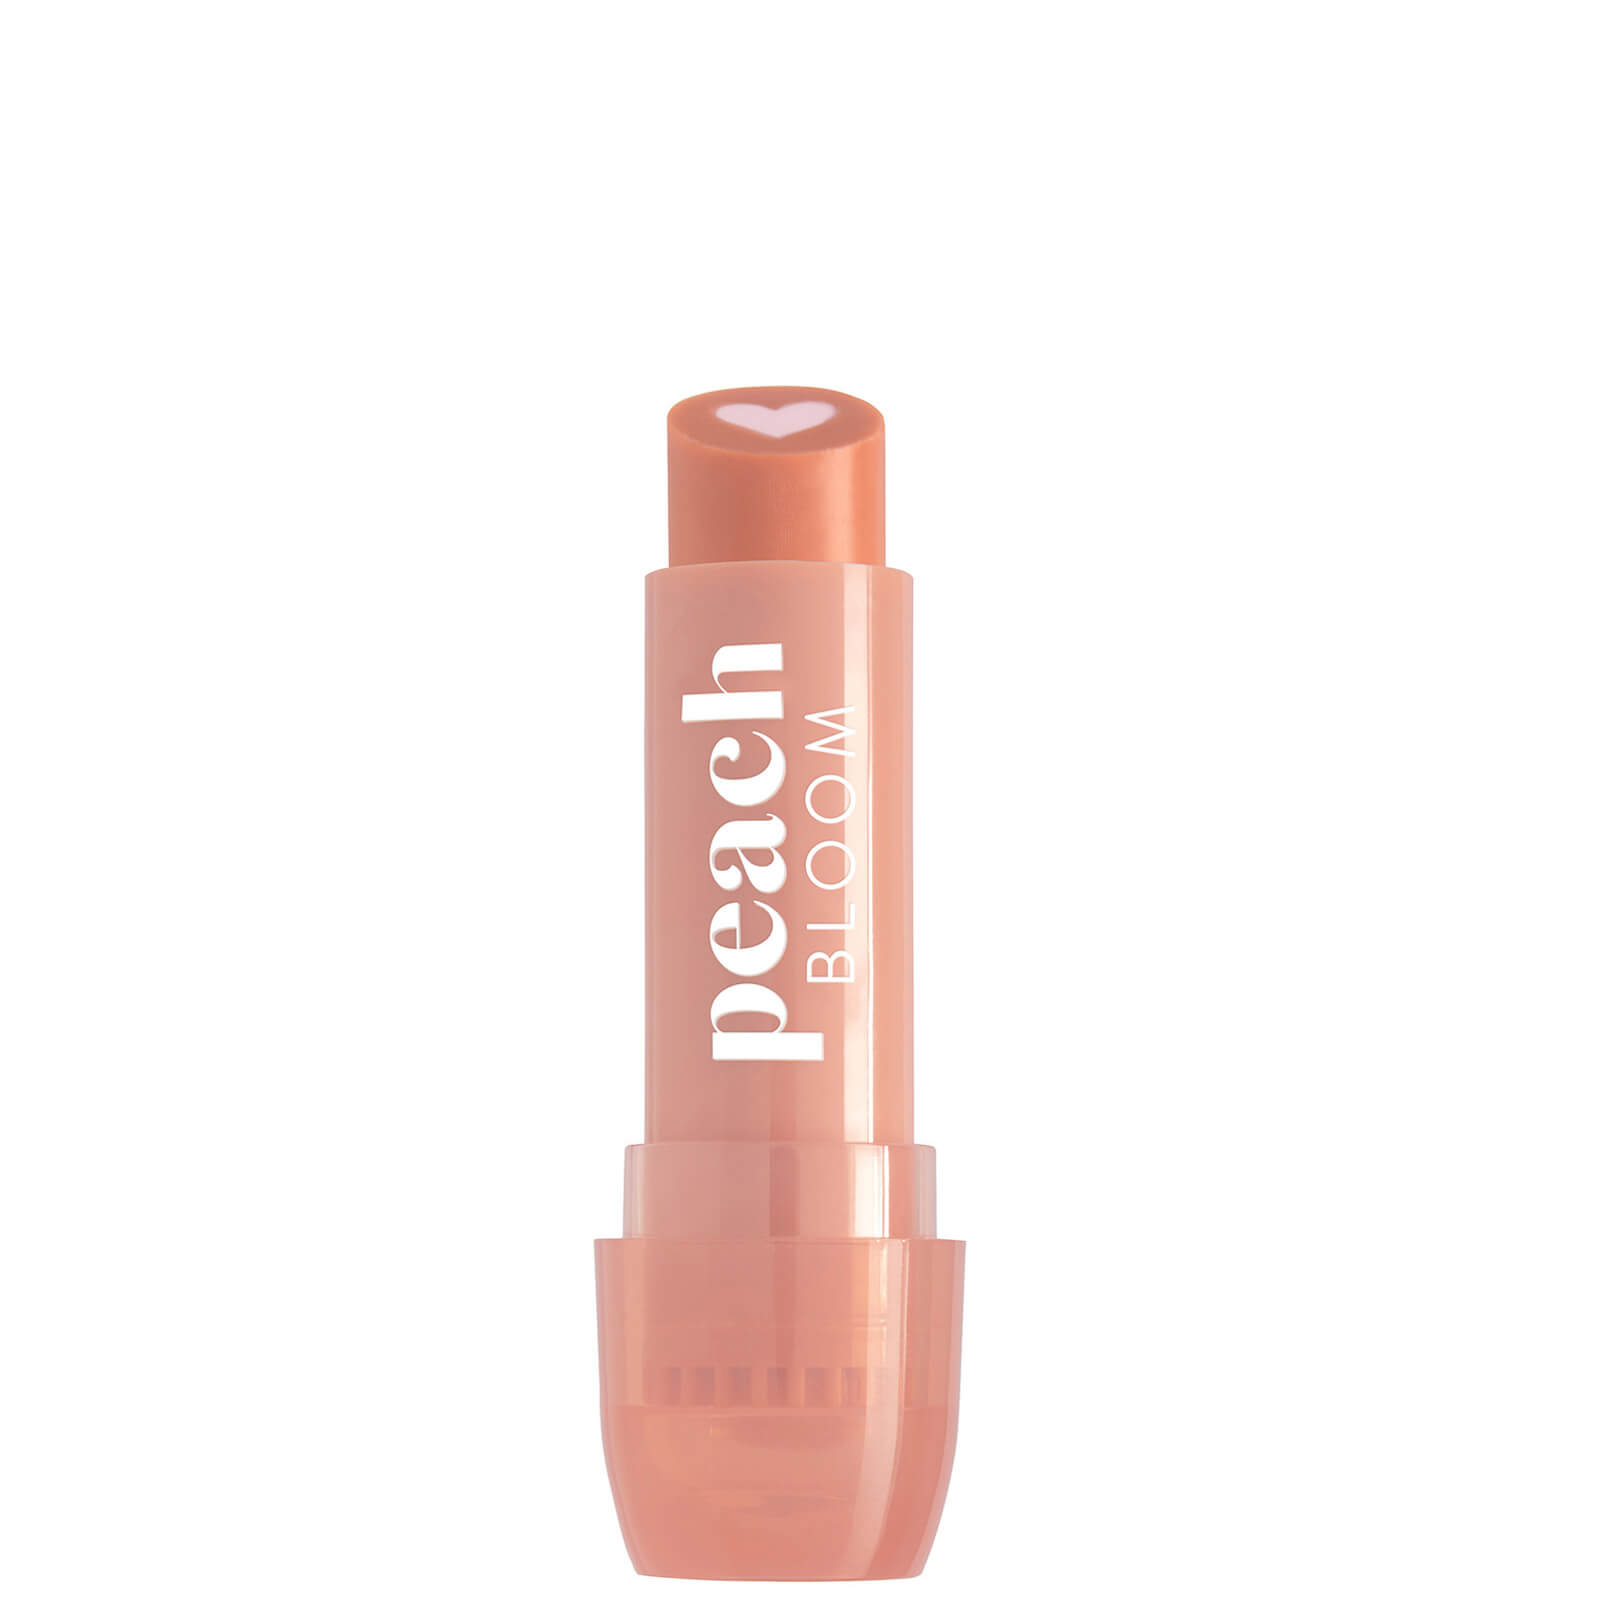 Too Faced Peach Bloom Colour Blossoming Lip Balm - Various Shades - Lilac Nude